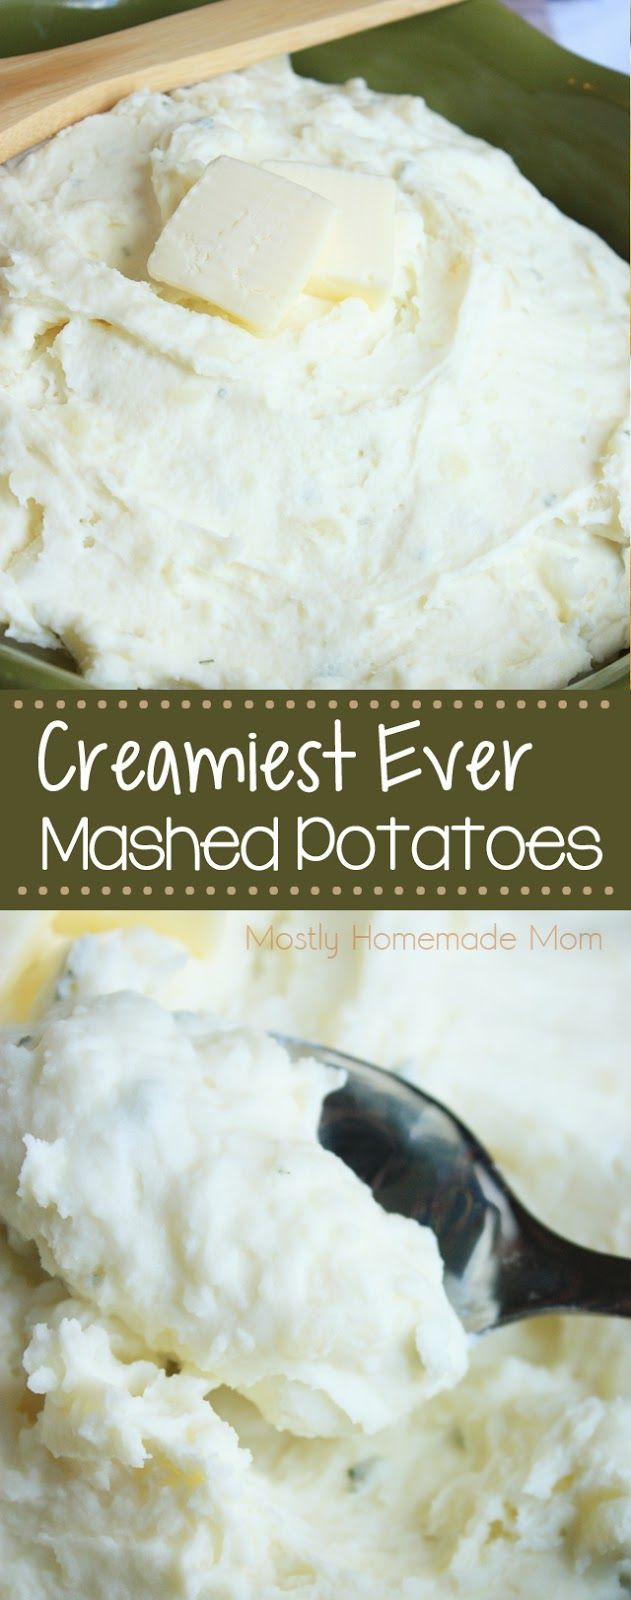 Creamy Mashed Potatoes - Mostly Homemade Mom